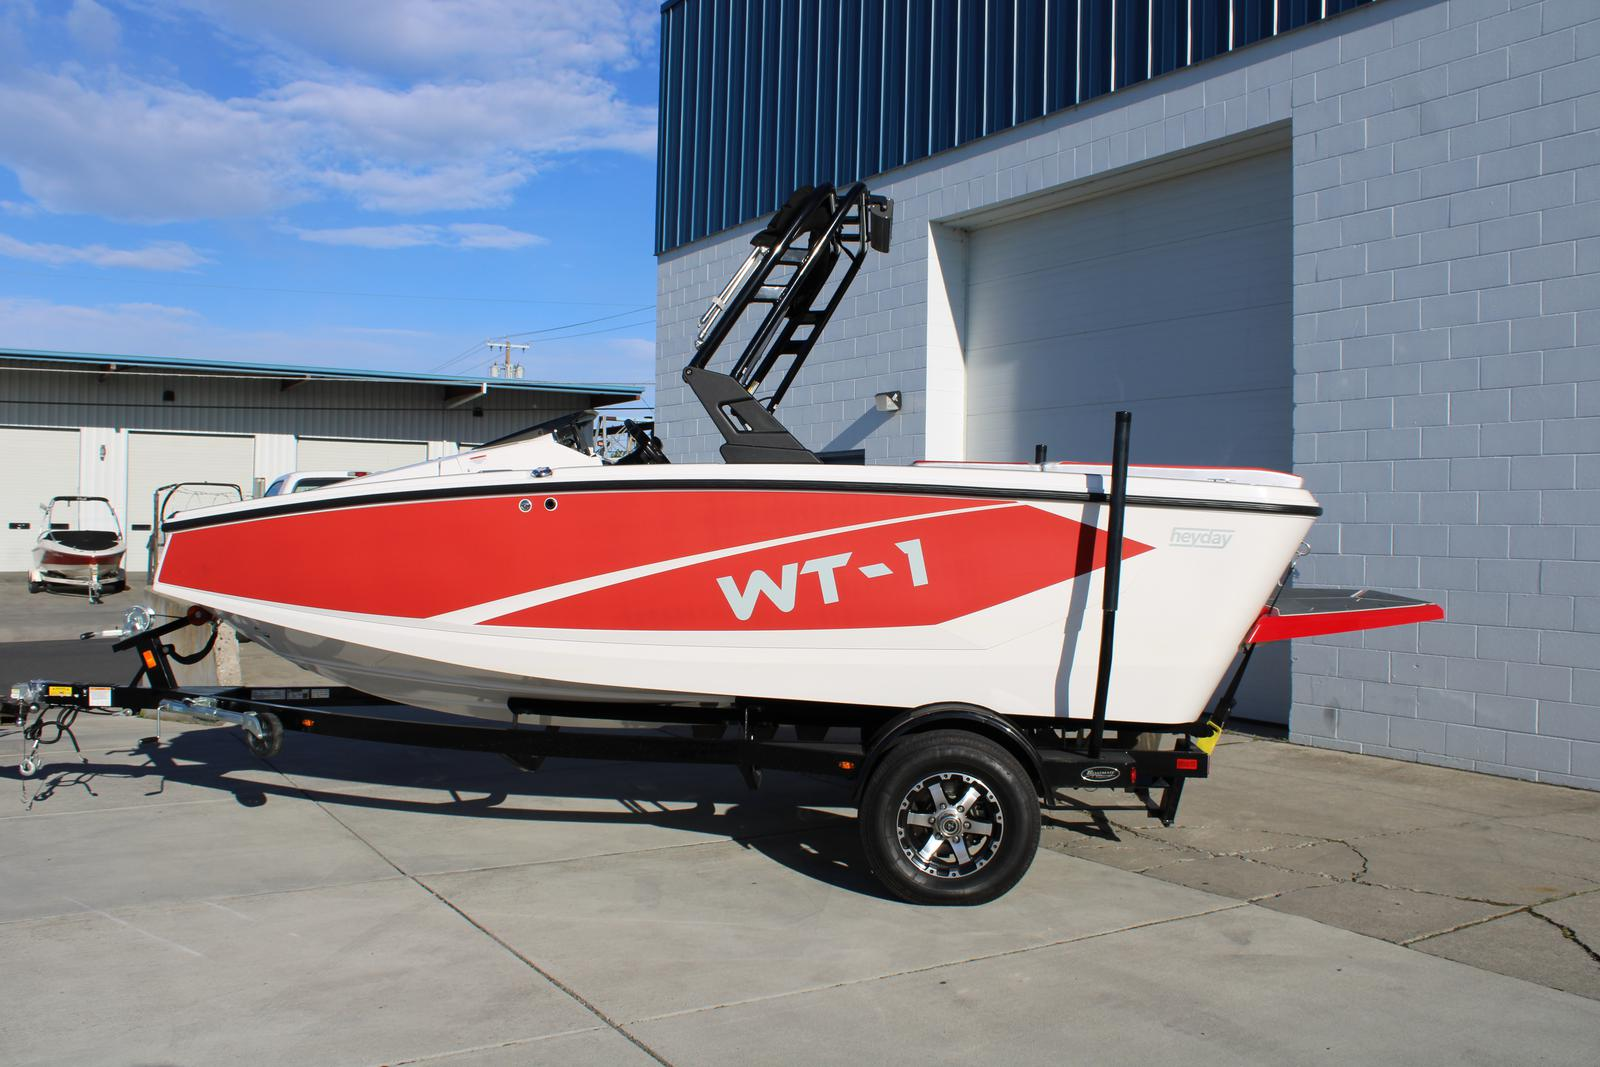 For Sale: 2016 Heyday Wt-1 20ft<br/>Trudeau's Sea Ray - Spokane